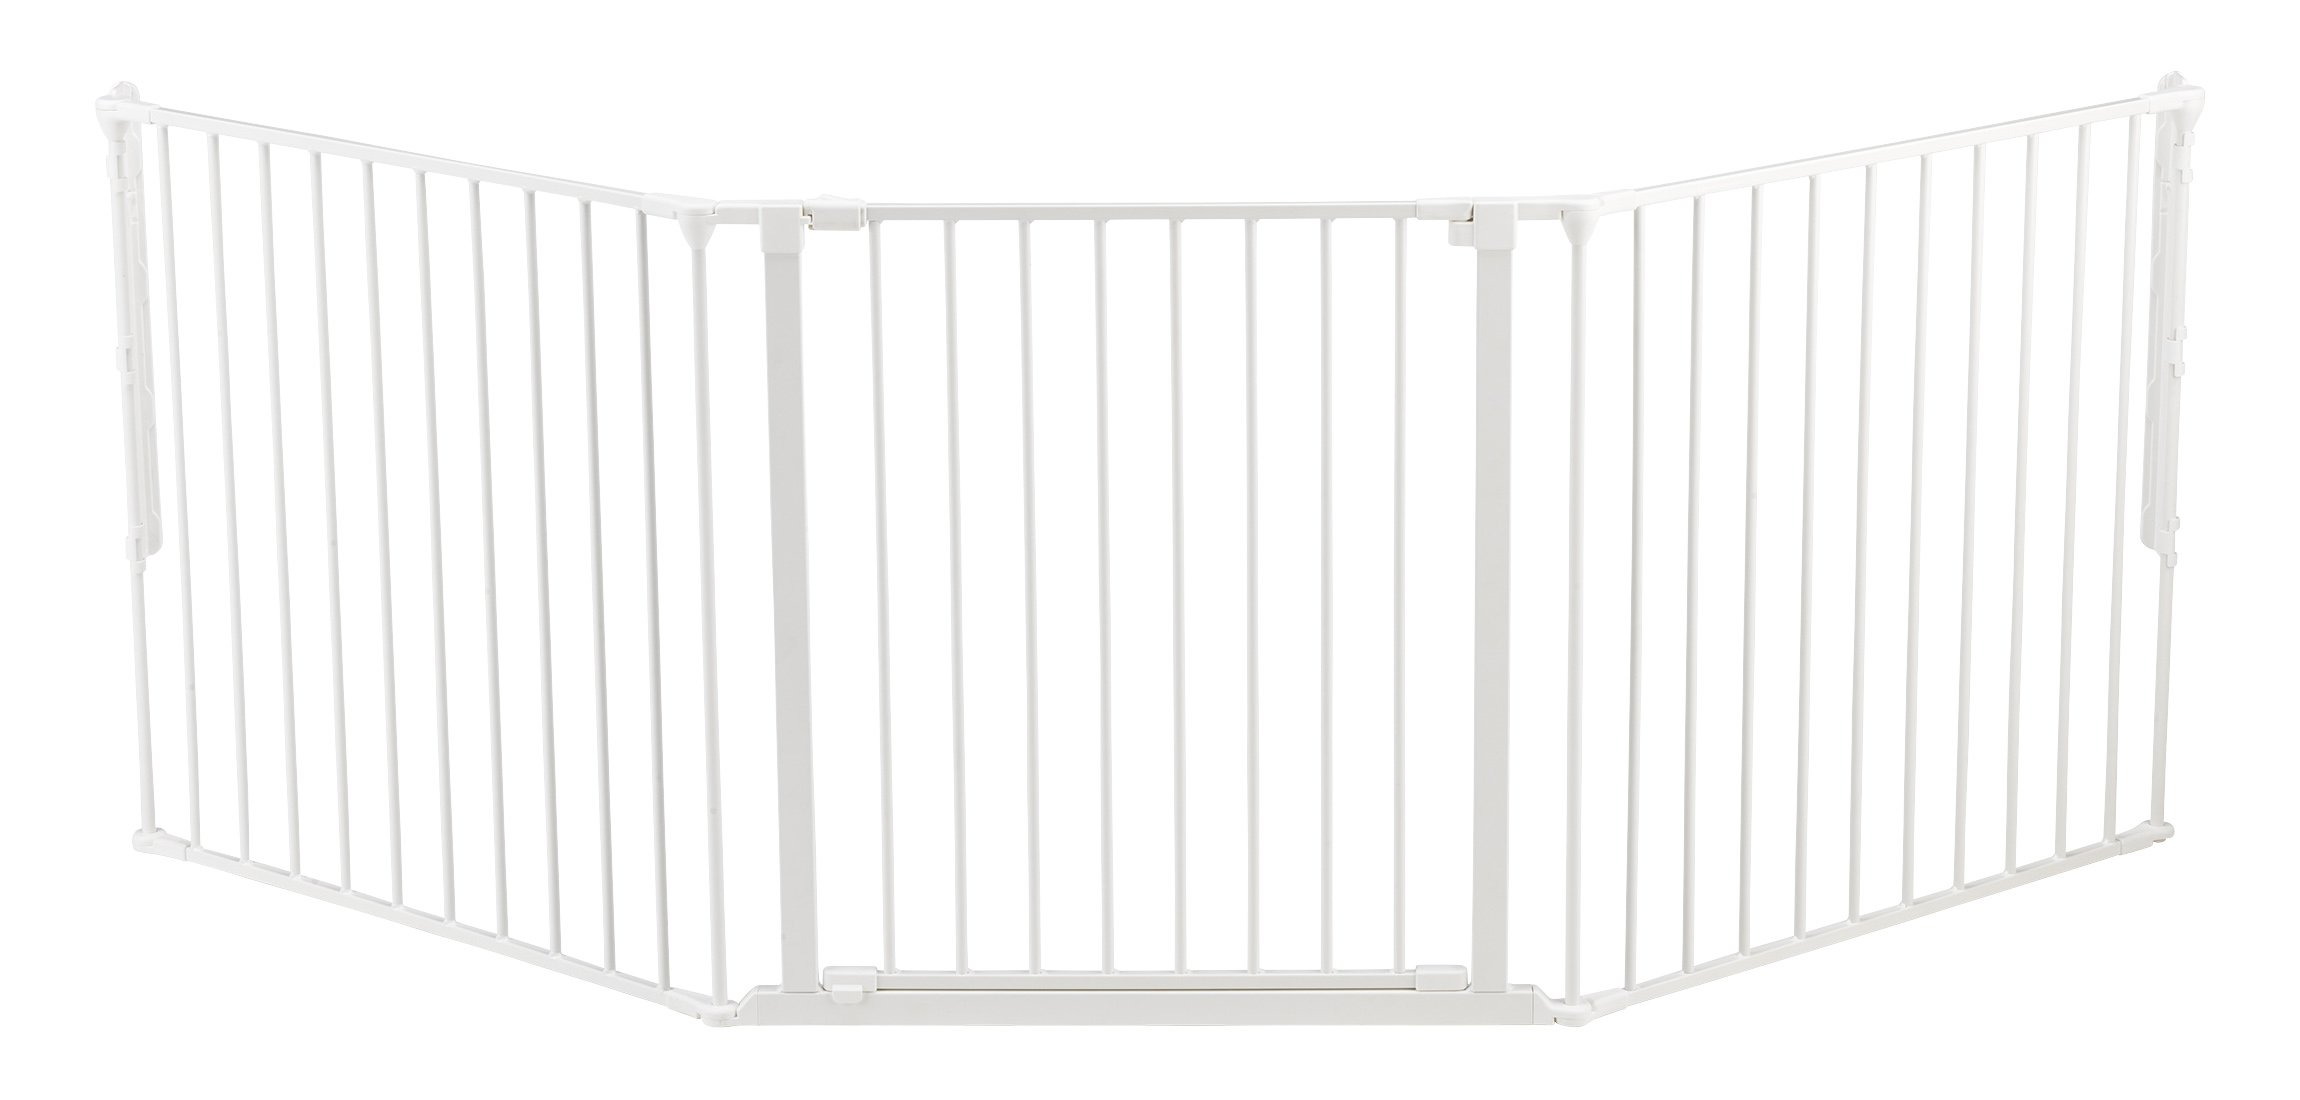 BabyDan Configure (Large 90-223cm, White)  Only configure system fulfilling newest European safety standard Multi purpose room divider and gate for wider openings Flexible and easy to fit 1